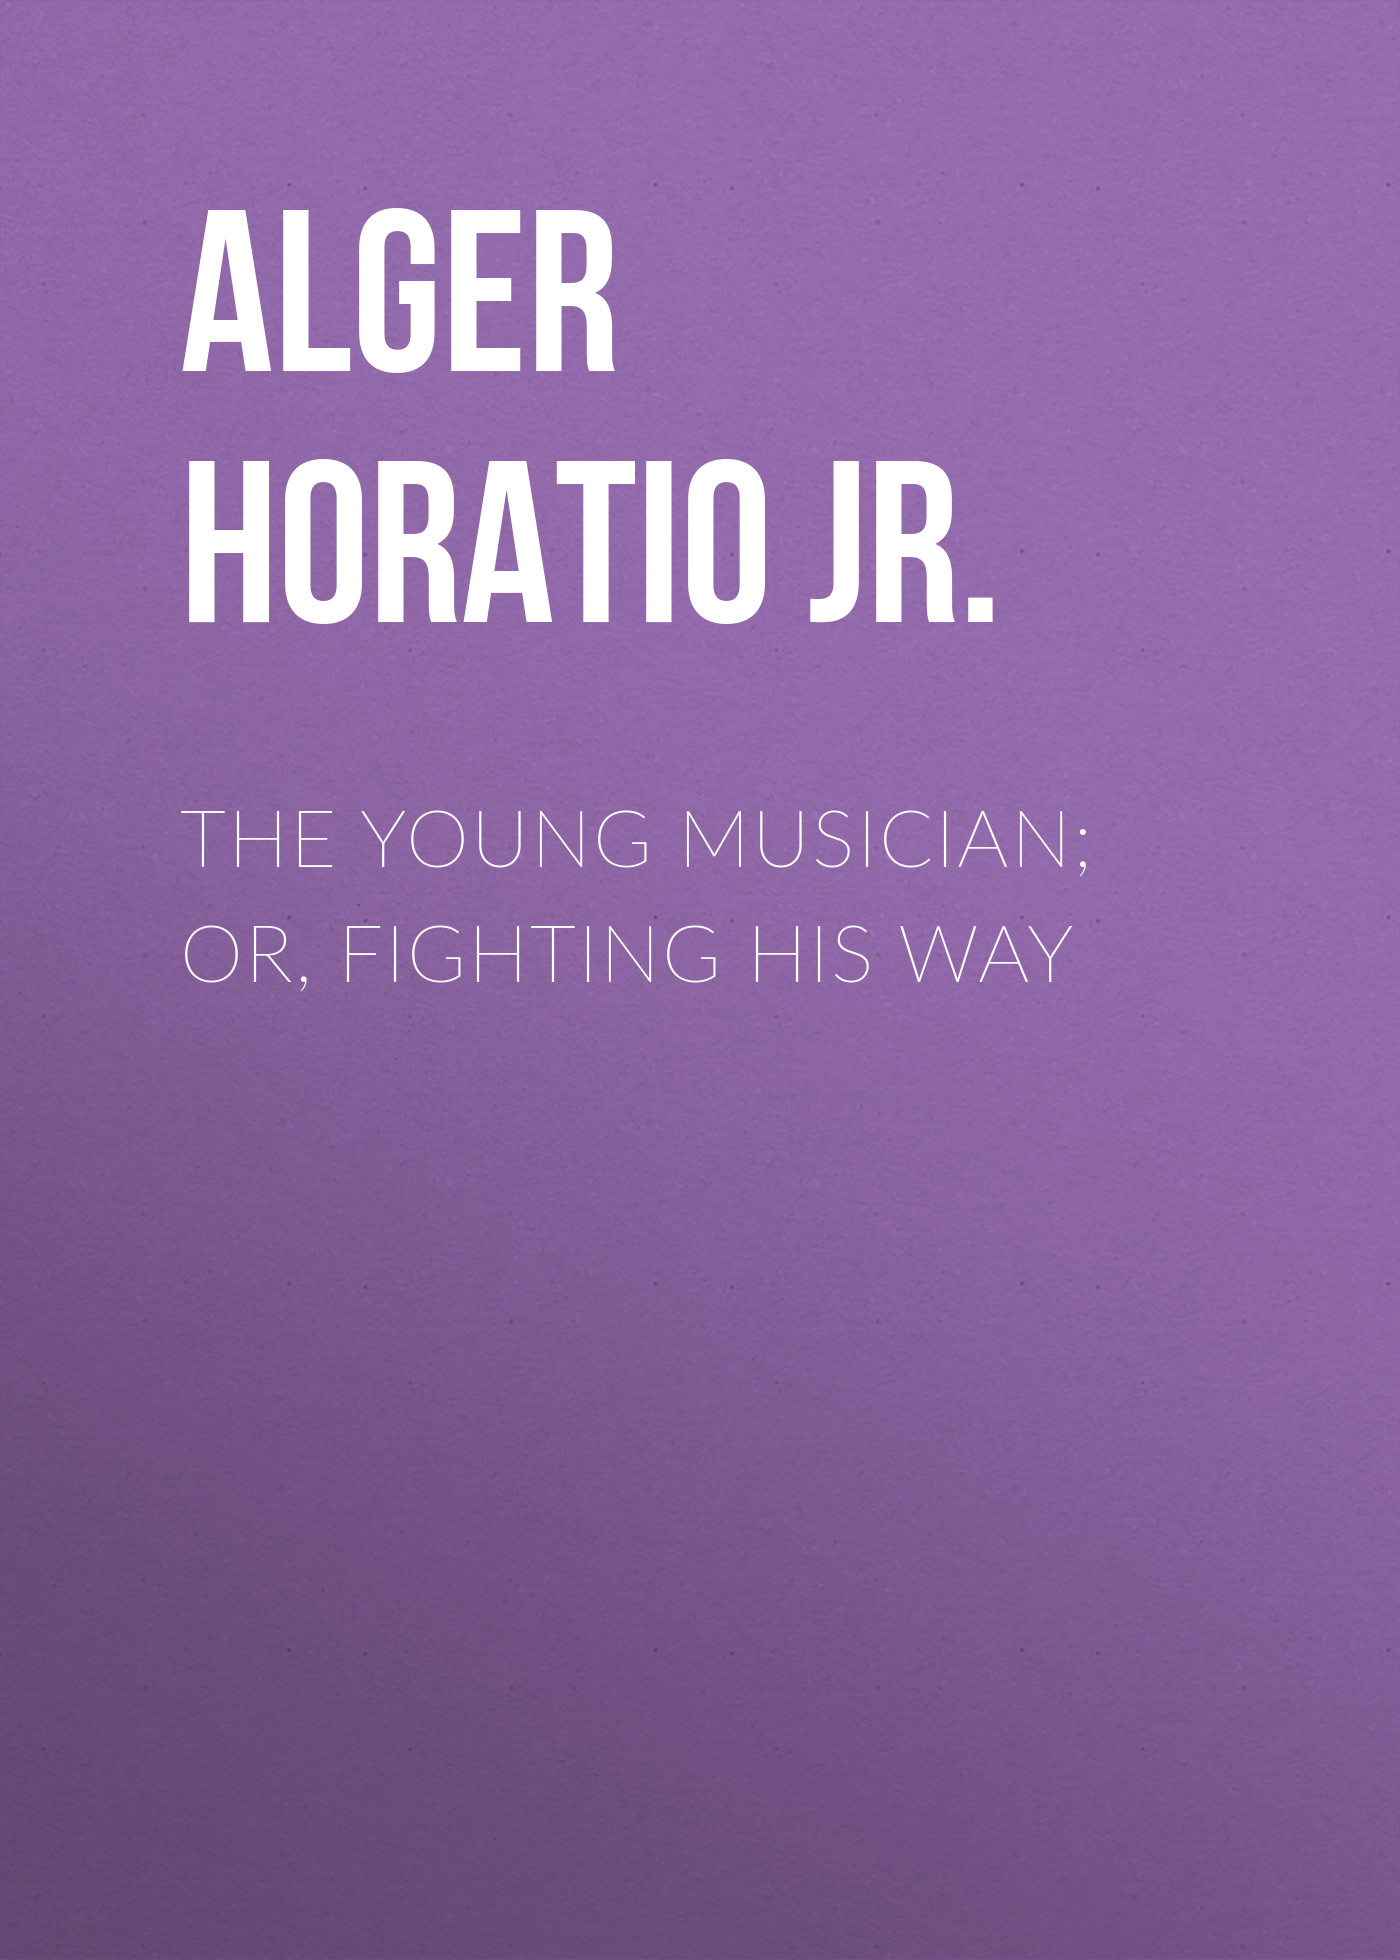 Alger Horatio Jr. The Young Musician; Or, Fighting His Way to a young jazz musician